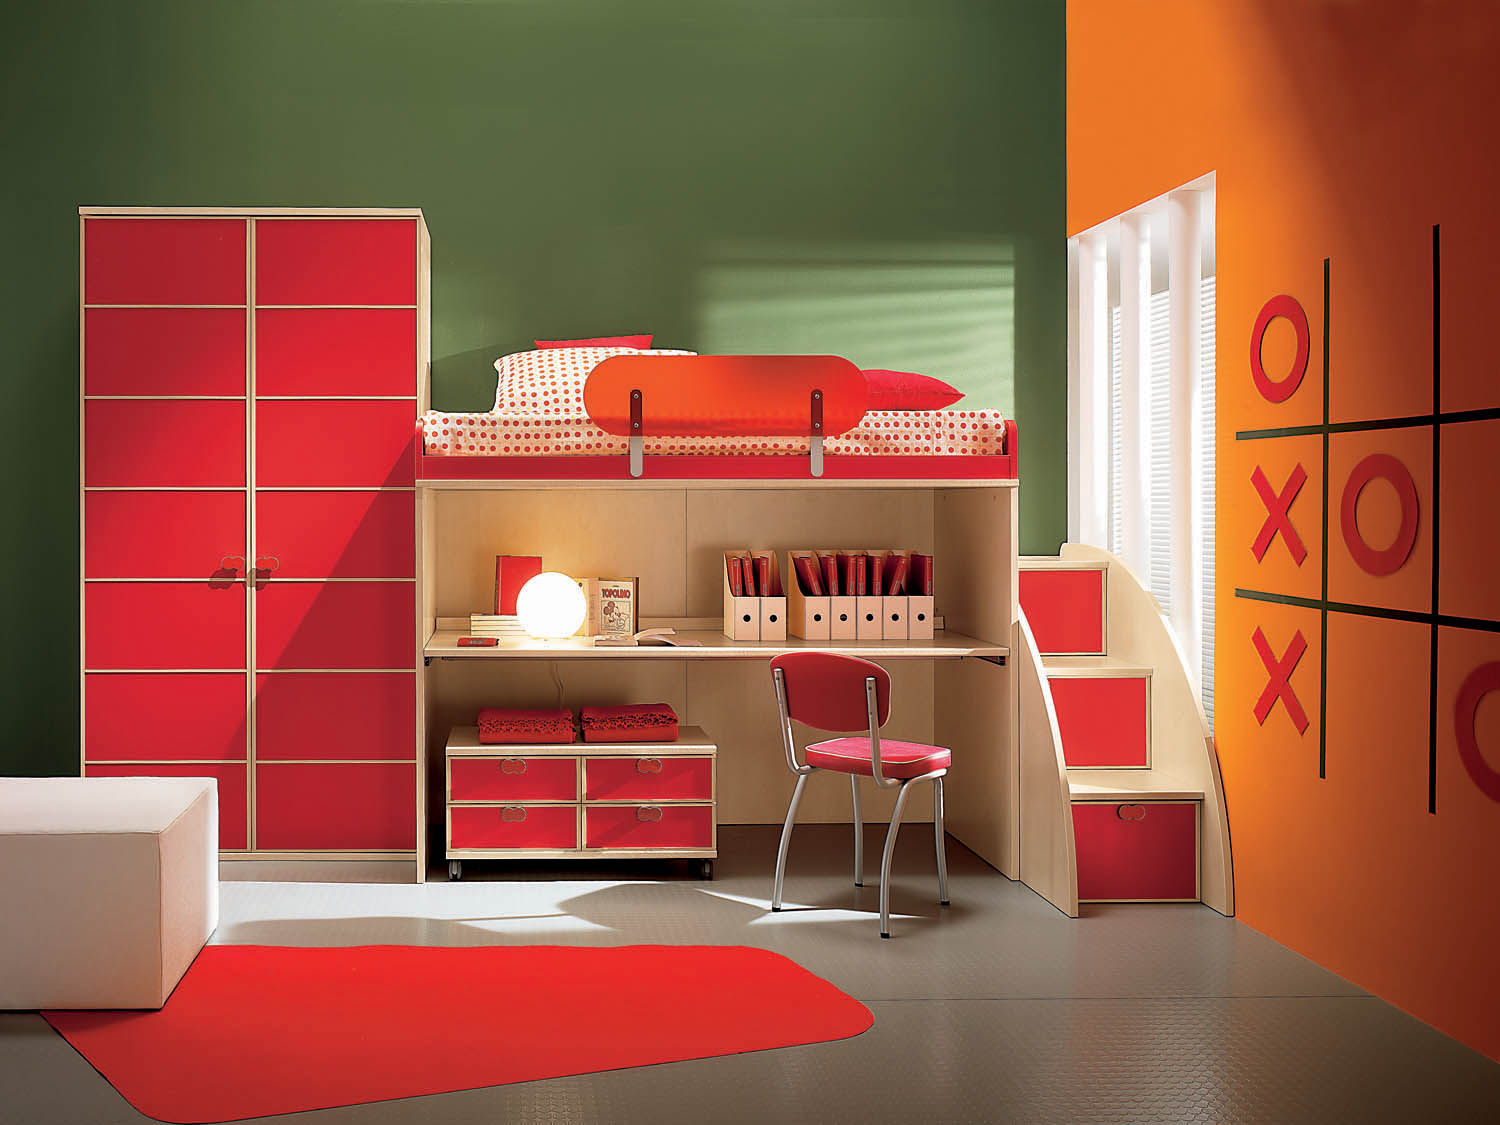 Remarkable Kids Bedroom Ideas with Bunk Bed 1500 x 1125 · 160 kB · jpeg